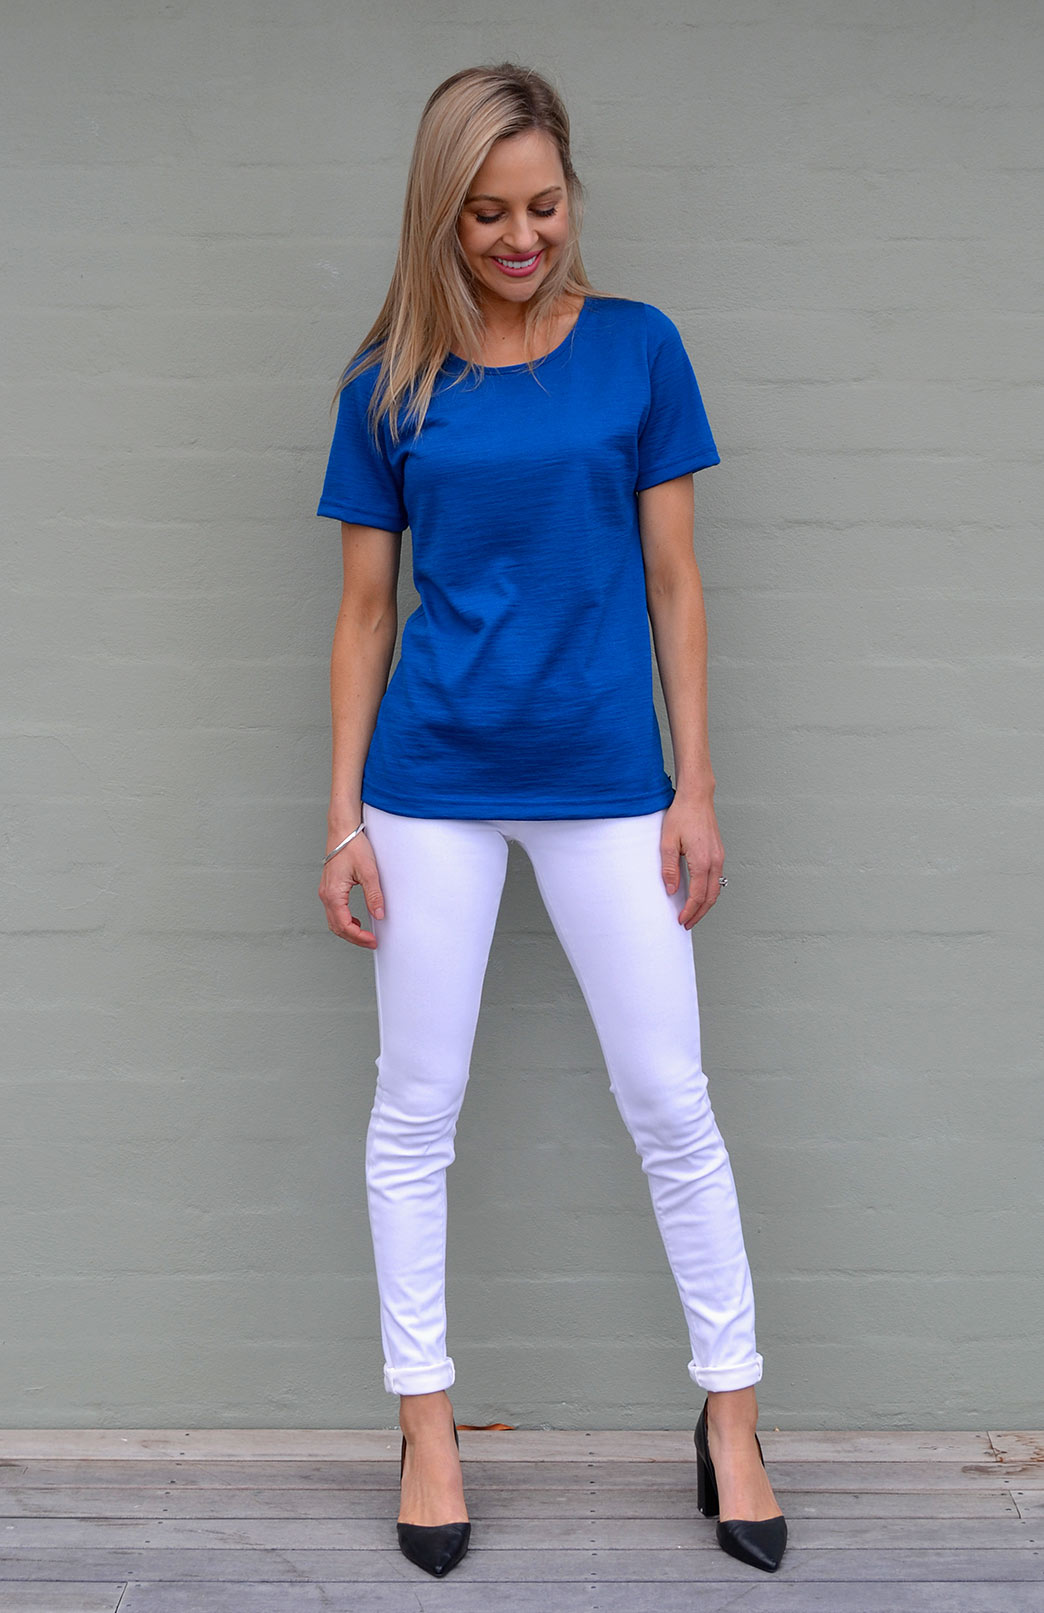 Rubie Top - Women's Pure Merino Wool Royal Blue Short Sleeved Round Neck Top - Smitten Merino Tasmania Australia